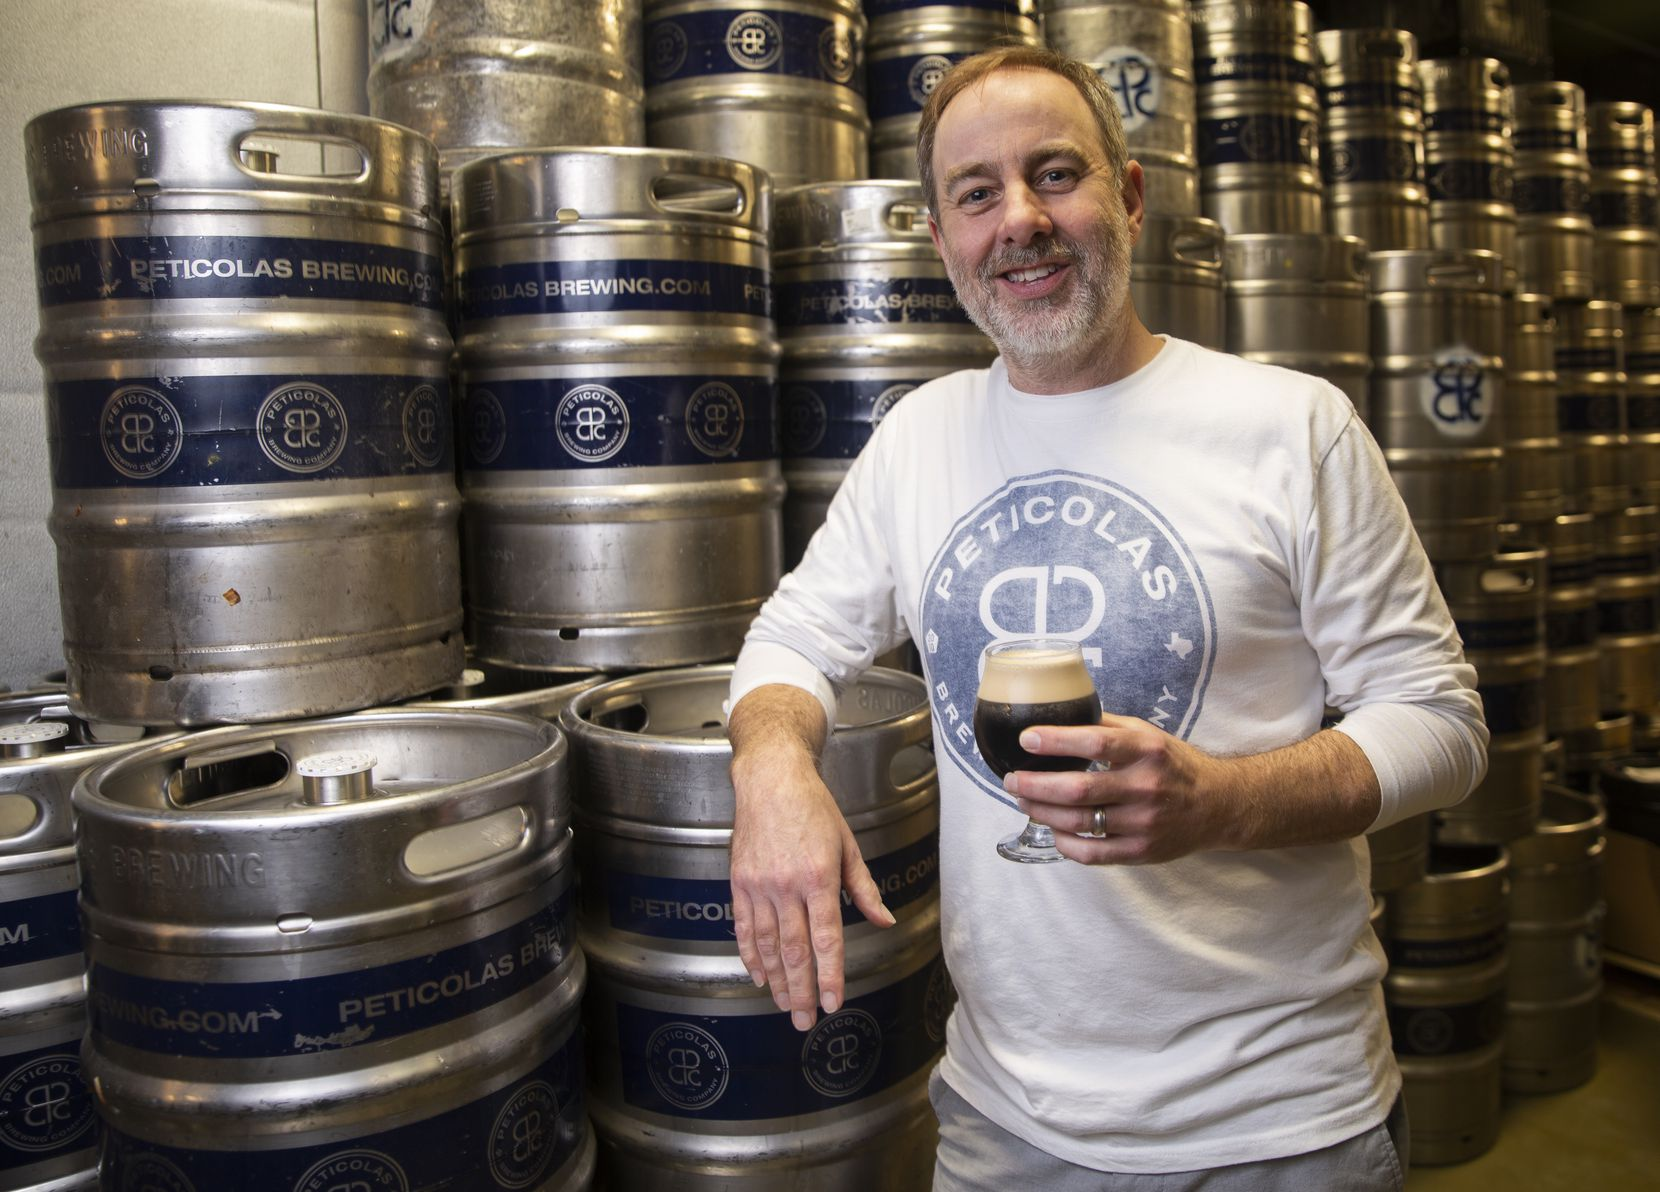 Owner Michael Peticolas poses for a photo at Peticolas Brewing Co. on Jan. 10, 2020 in Dallas. Congress extended for one year a valuable tax break last month for Texas alcohol producers like Peticolas. (Juan Figueroa/ The Dallas Morning News)